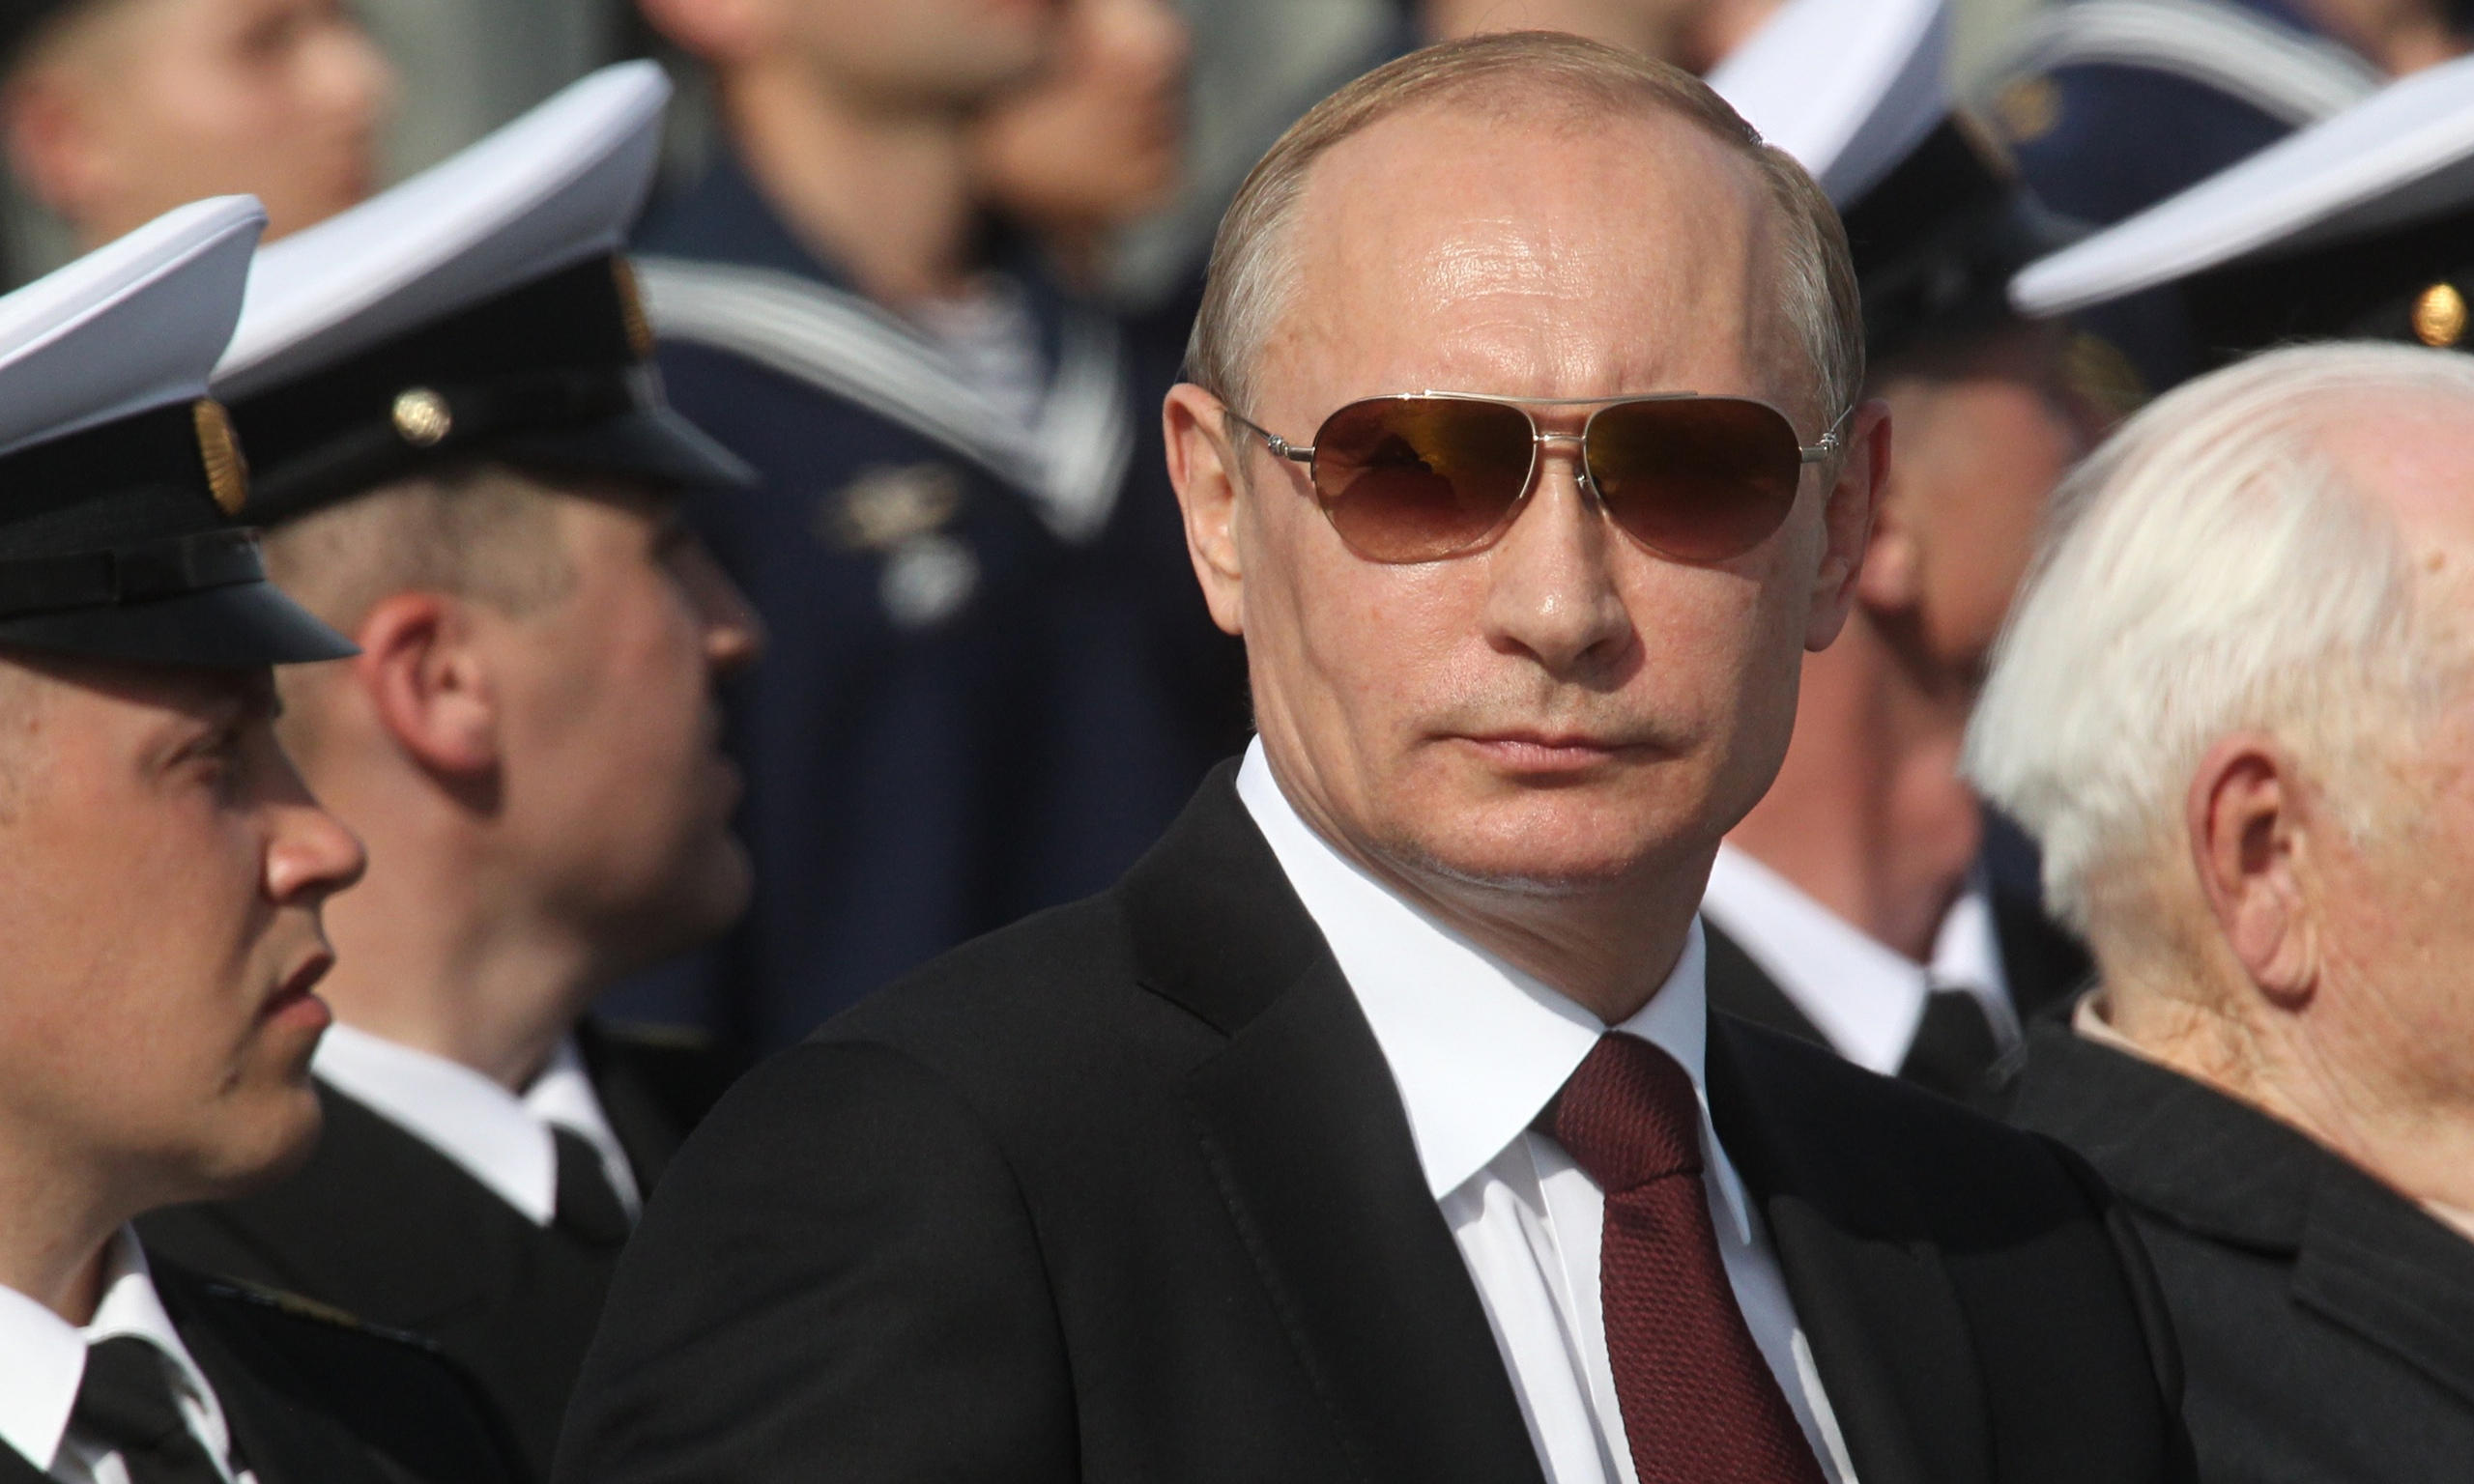 http://static.guim.co.uk/sys-images/Guardian/Pix/pictures/2014/7/31/1406809572640/Vladimir-Putin-at-a-navy--014.jpg